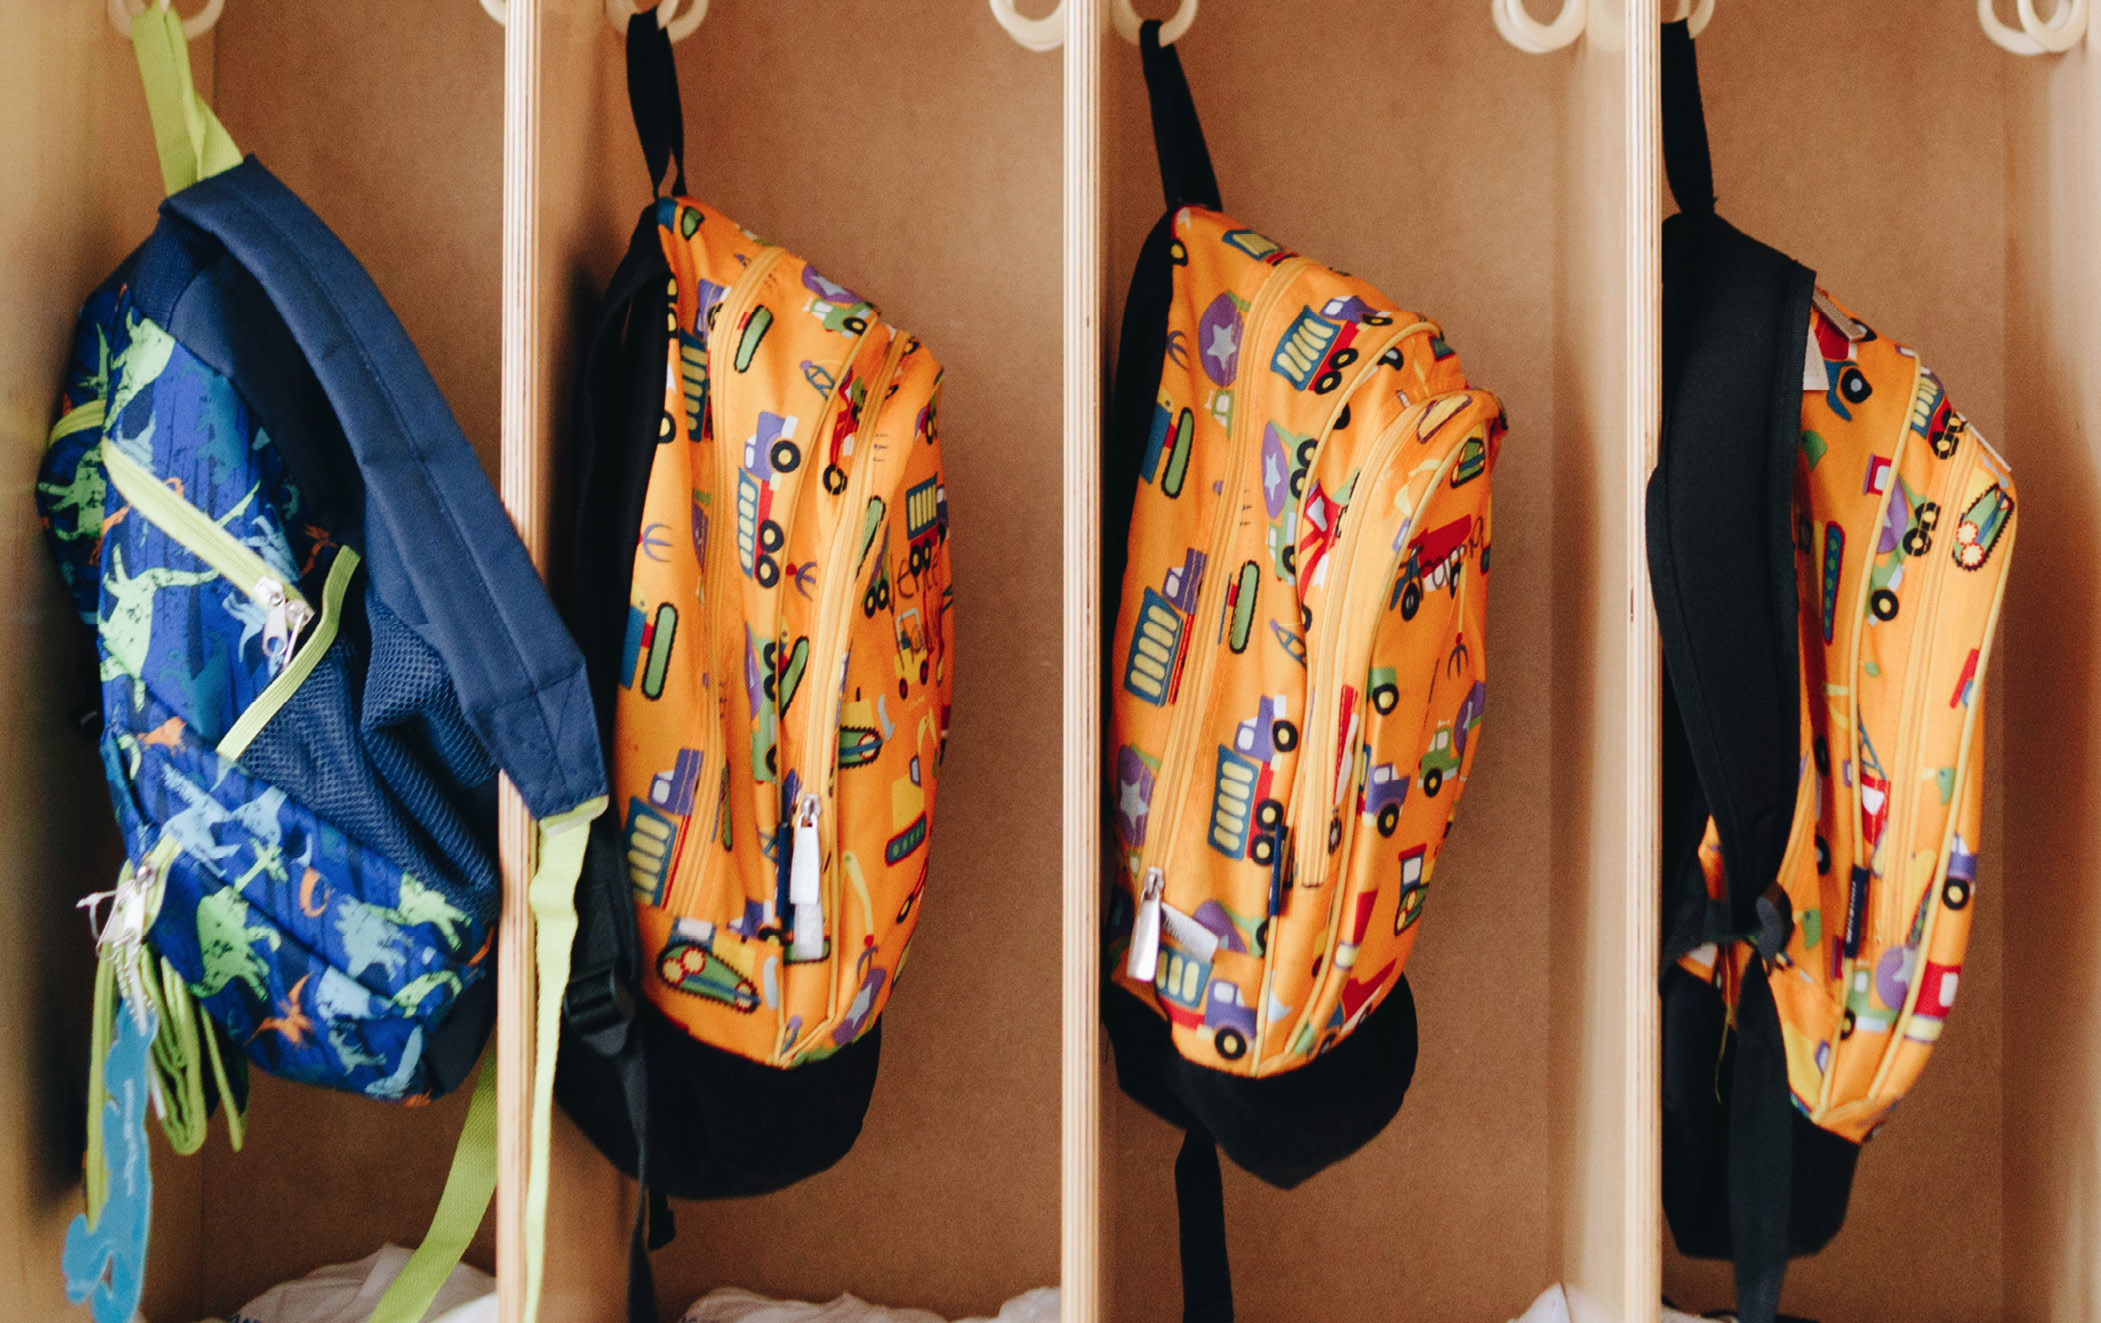 The book bags that hang in students' cubbies were donated at the start of the school year, along with uniforms and other school supplies.